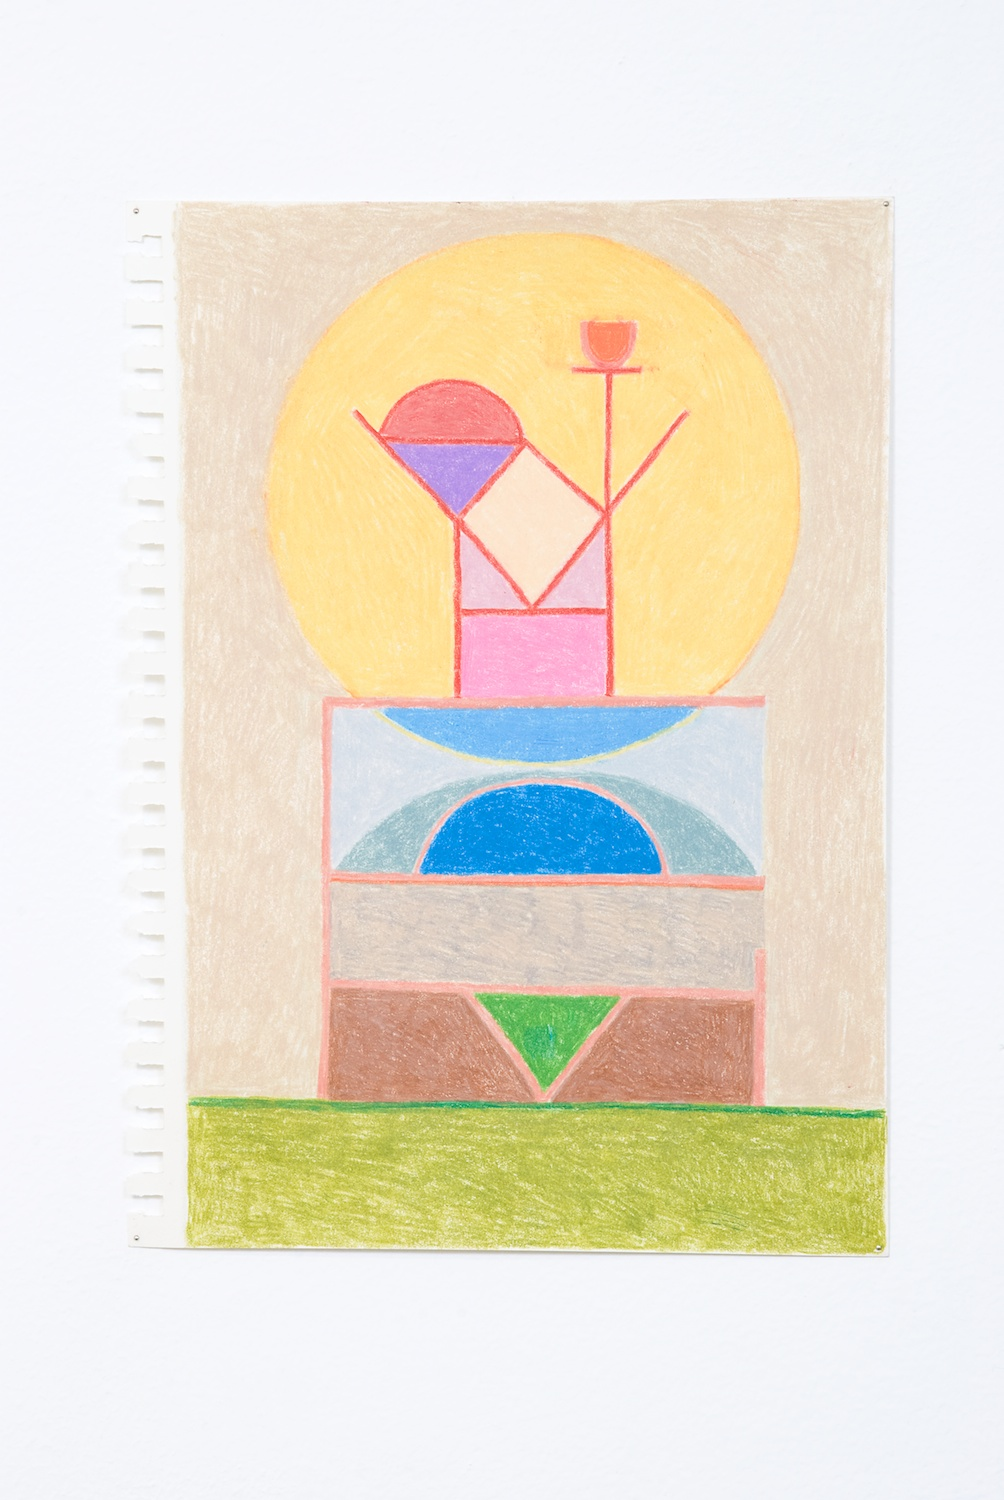 Elijah Burgher  Promise Delivery  2009 Colored pencil on paper 12h x 8w in EB013